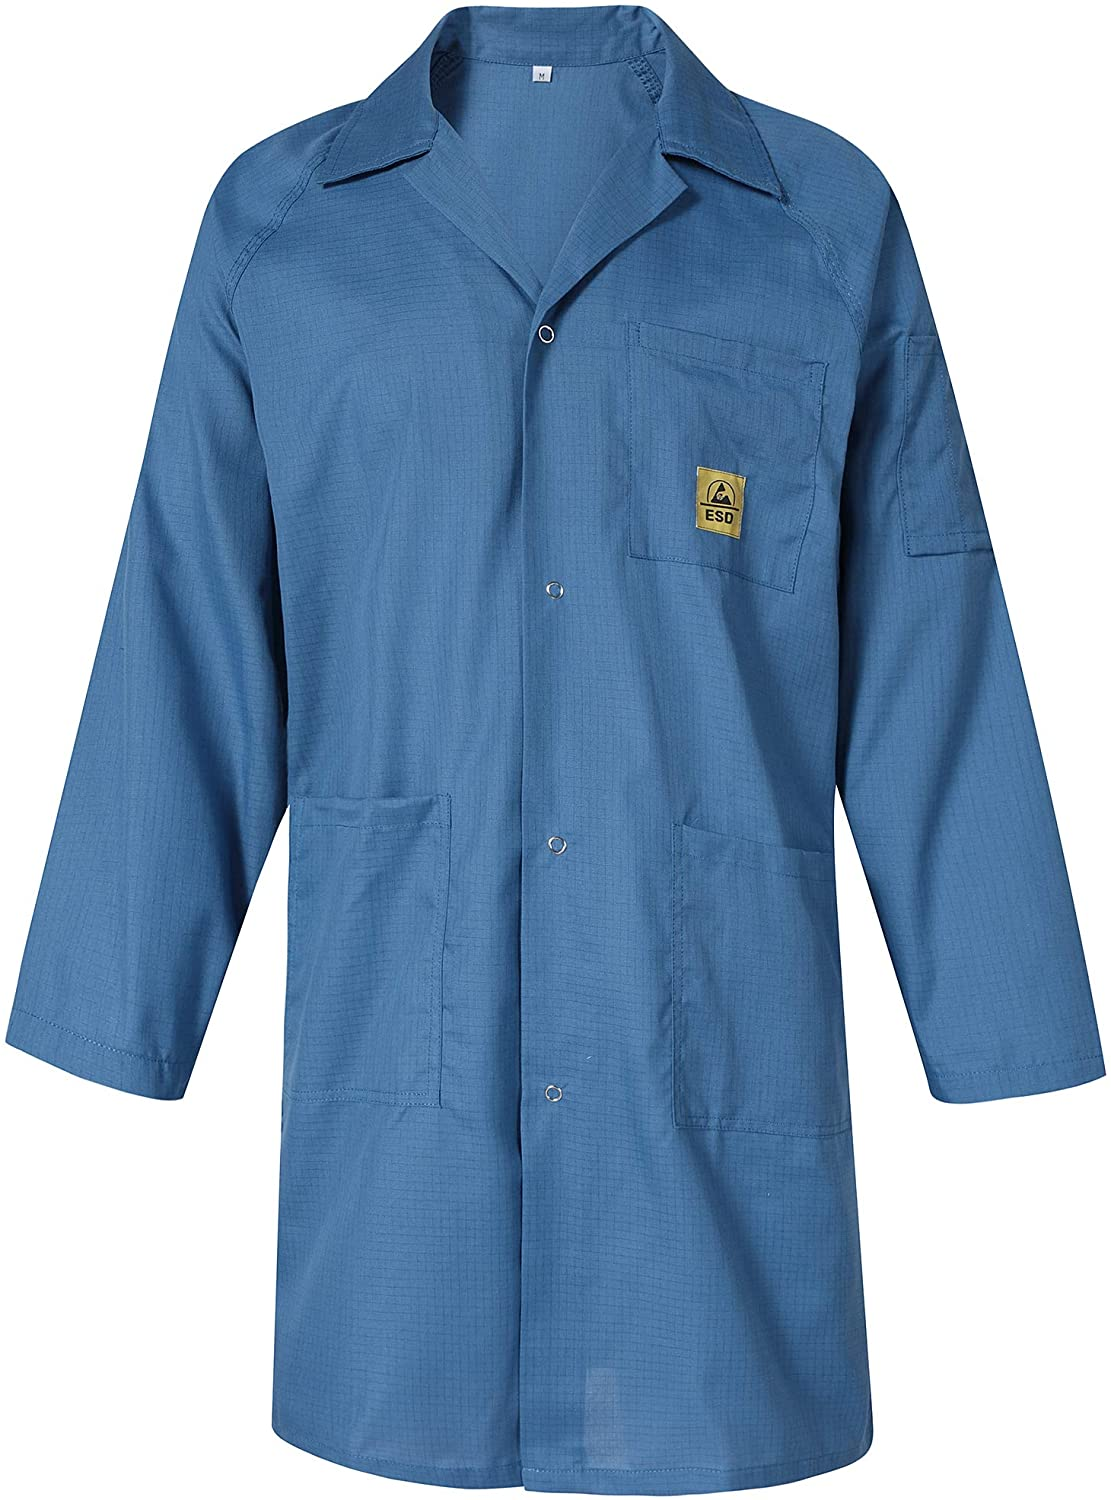 earthinglife ESD Conductive Coat Smocks Comfort Fit